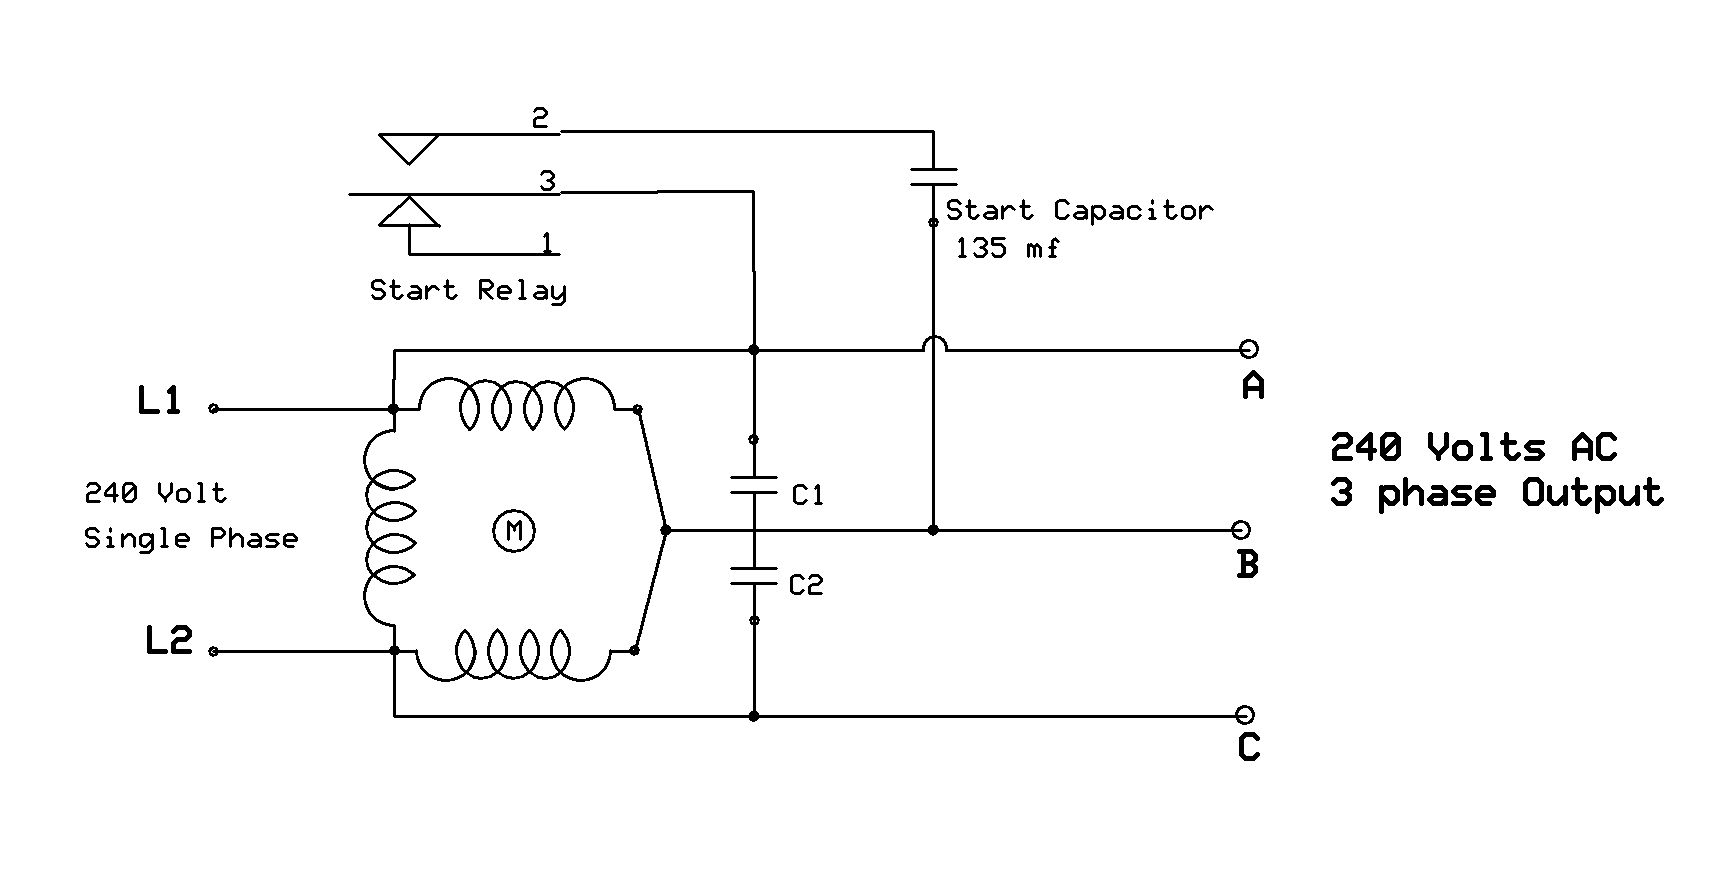 wiring diagram for a single phase motor 230 v – the wiring diagram, Wiring diagram